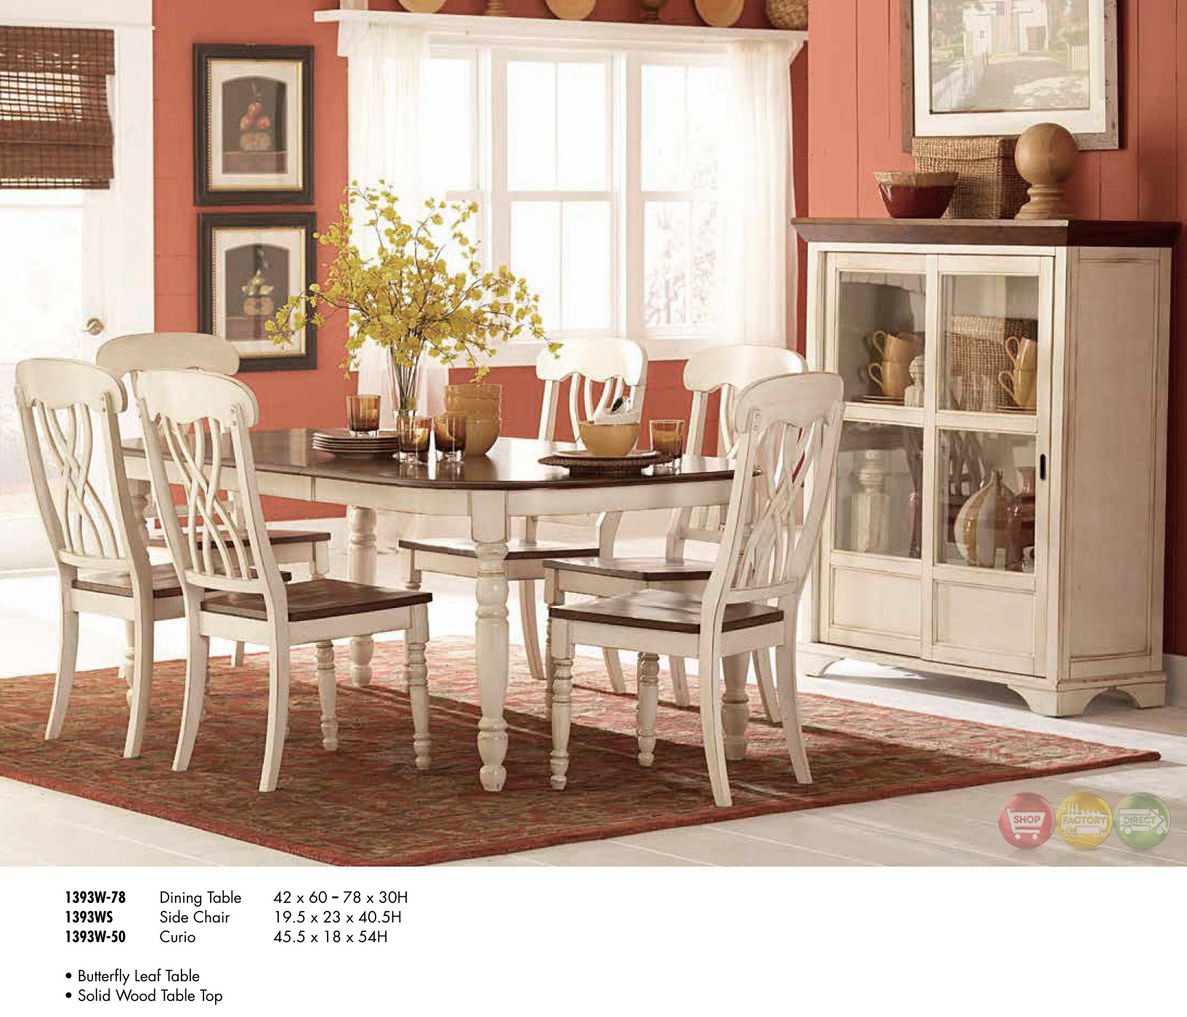 Cottage Dining Room Sets: Ohana Cottage Style Oval Whitewash Dining Room Set